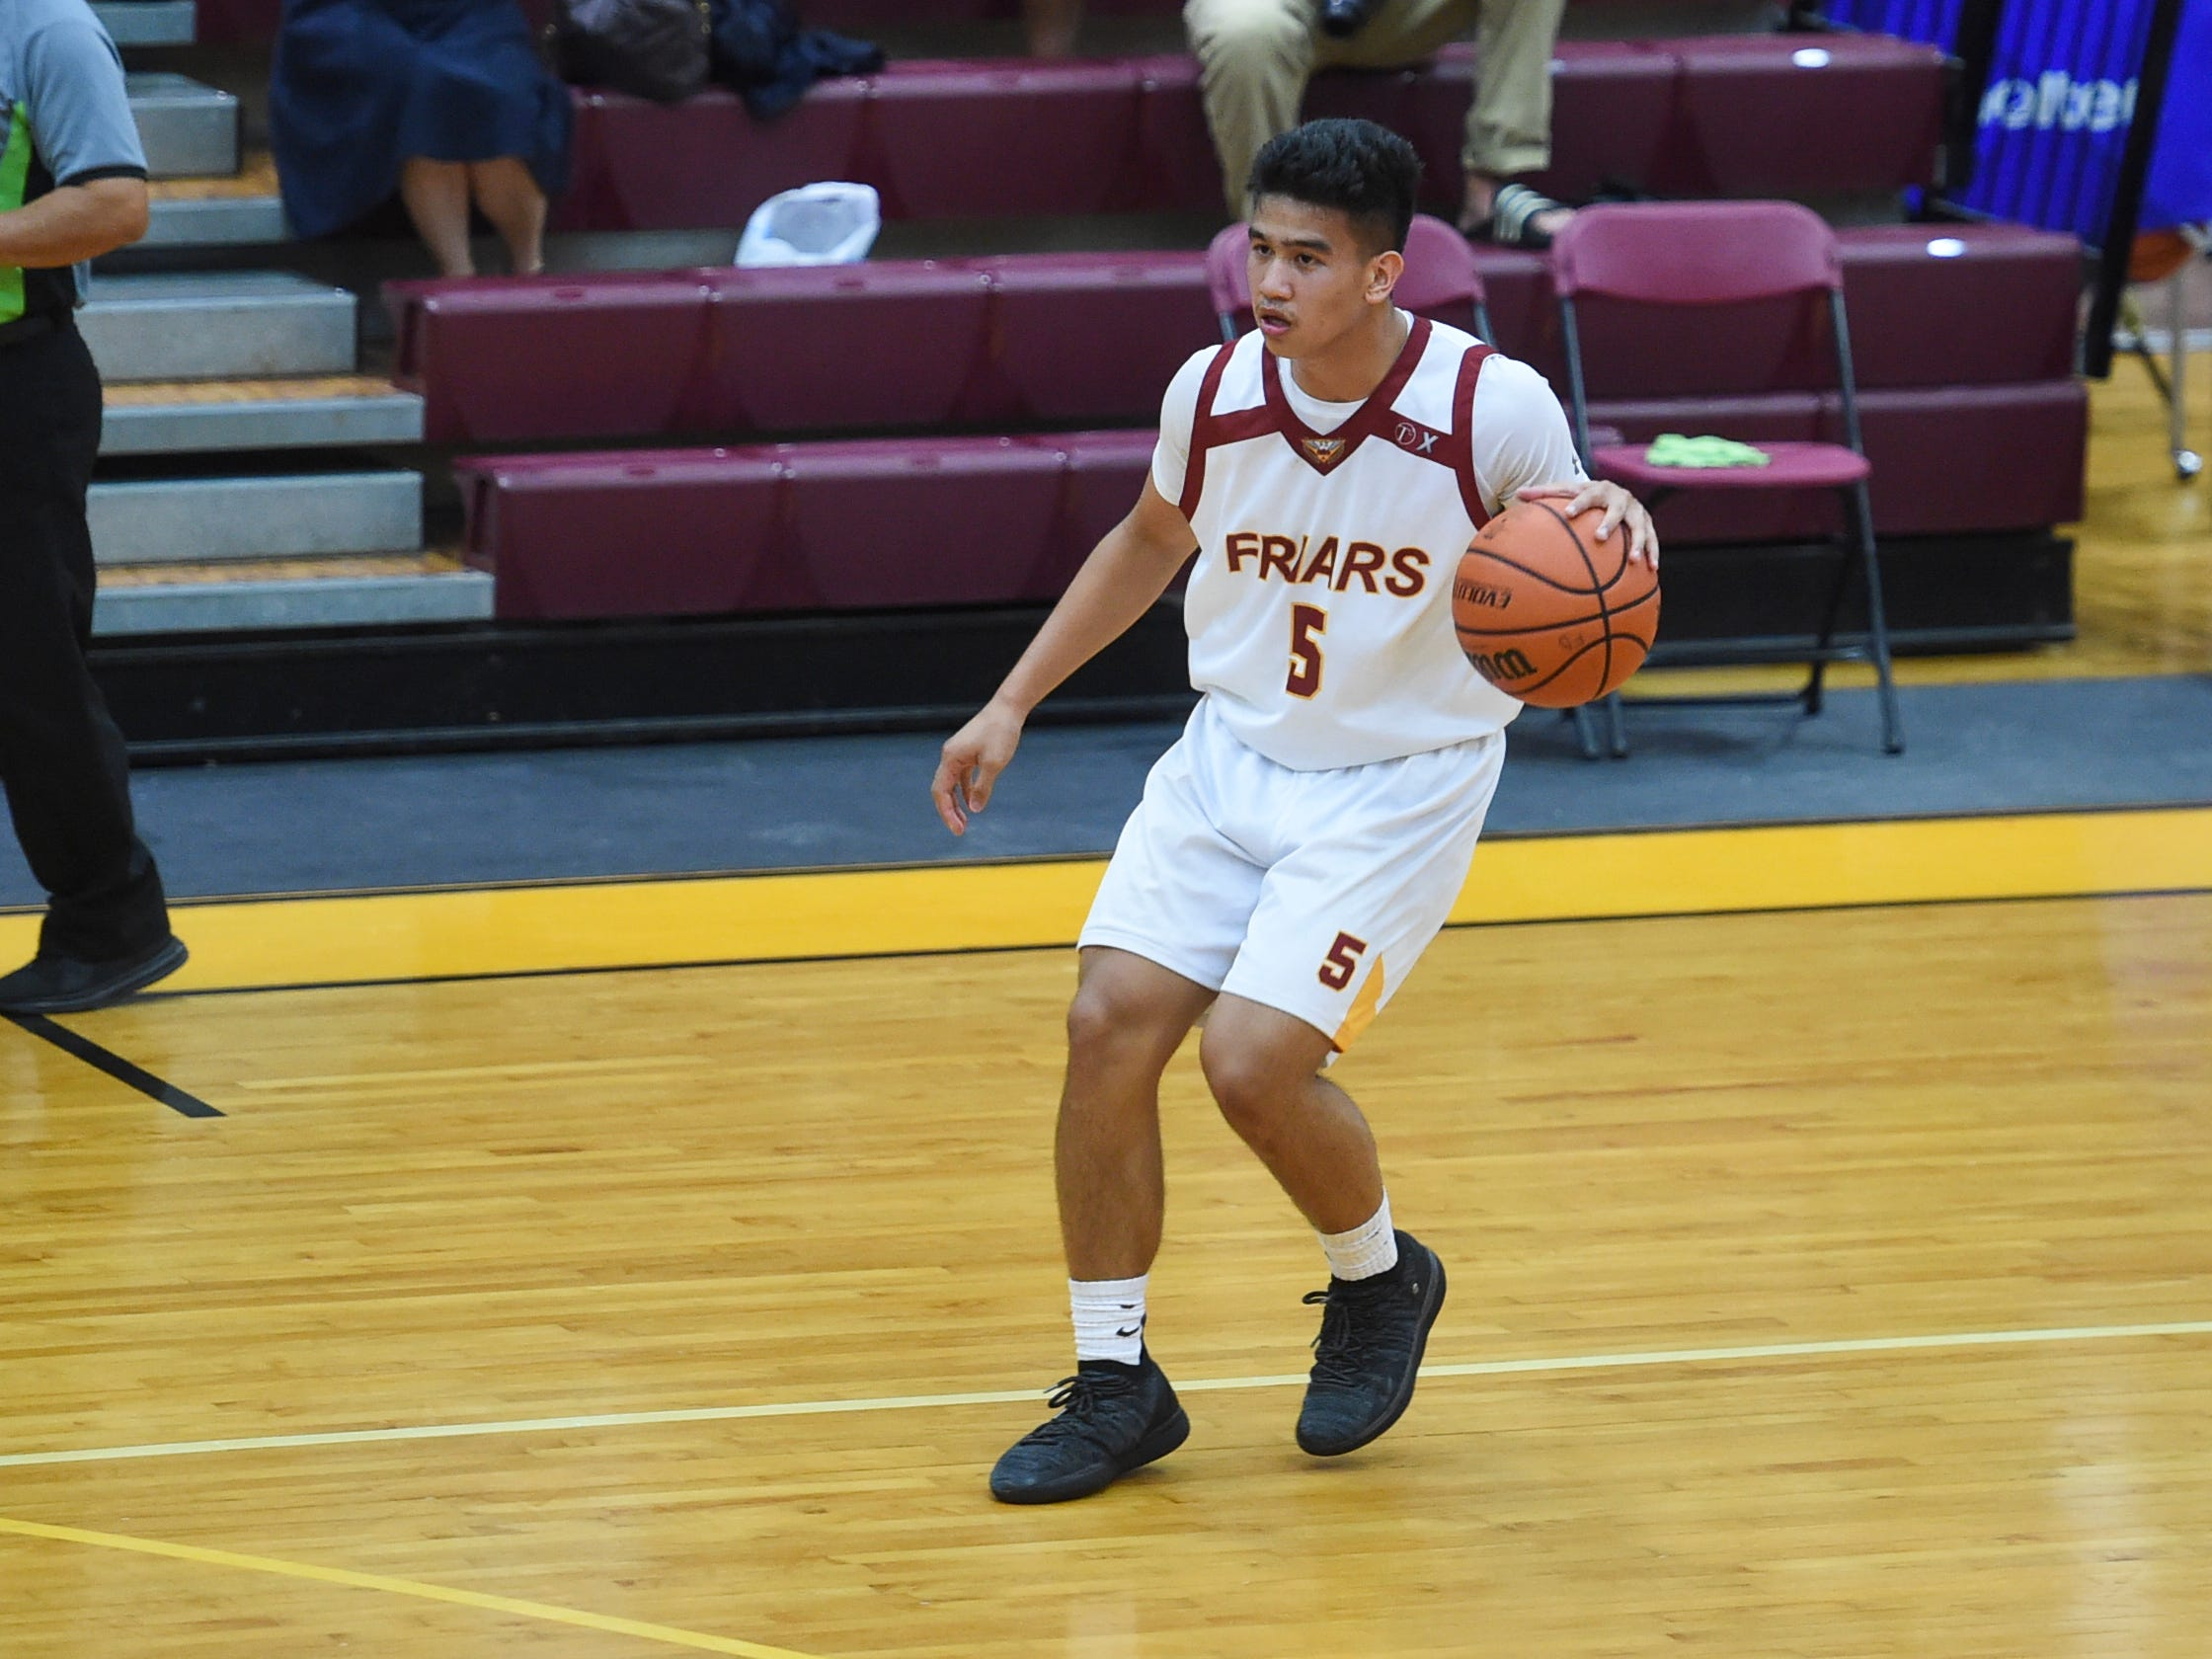 Father Duenas player Raymond Soriano (5) brings the ball down the court against the John F Kennedy Islanders during their IIAAG Boys' Basketball playoff game at the FD Phoenix Center, March 8, 2019. The Friars came up with the 64-62 win at the end of overtime after a close back-and-forth contest.